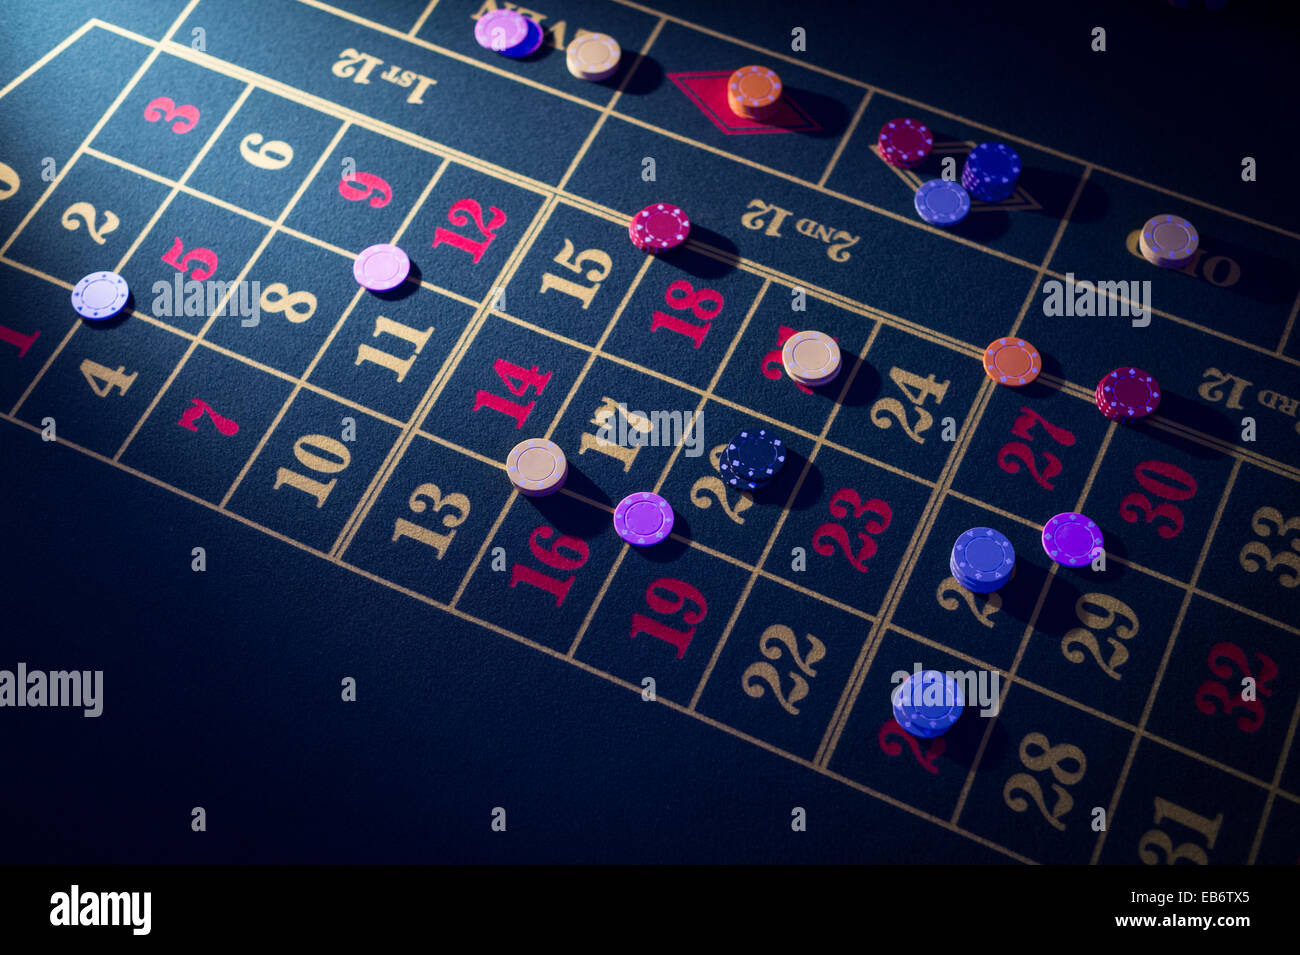 People playing at roulette  gambling in a 'casino' at a wedding reception, UK - Stock Image